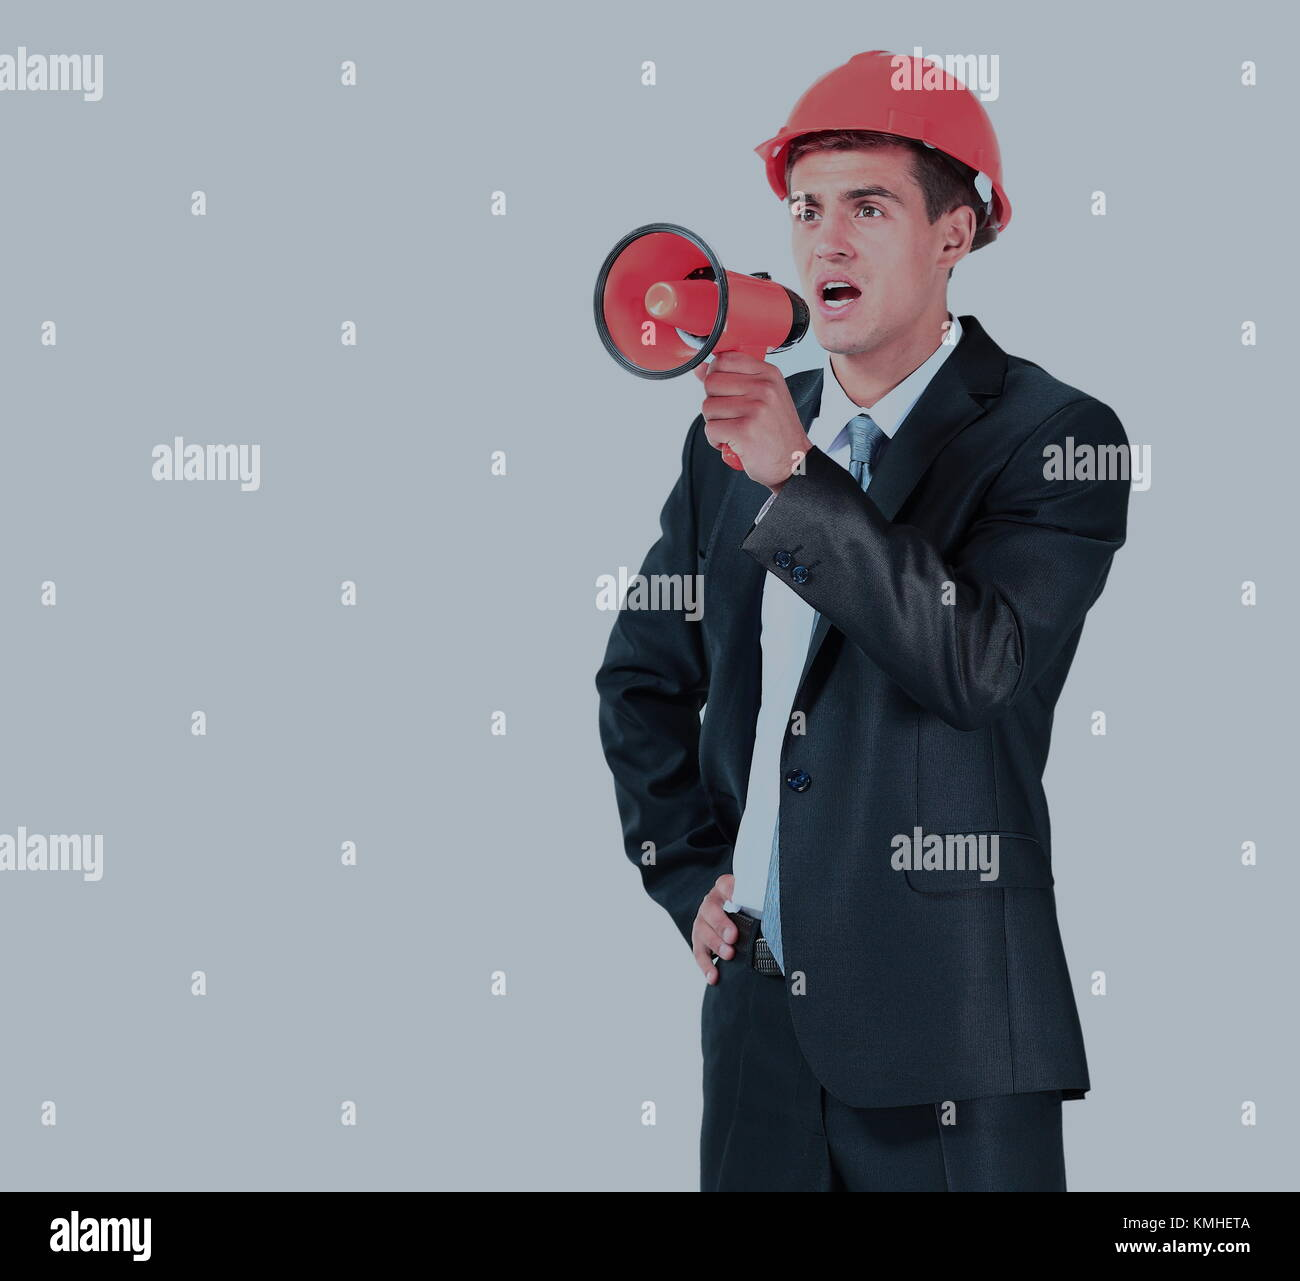 architect screaming loudly in a megaphone - Stock Image